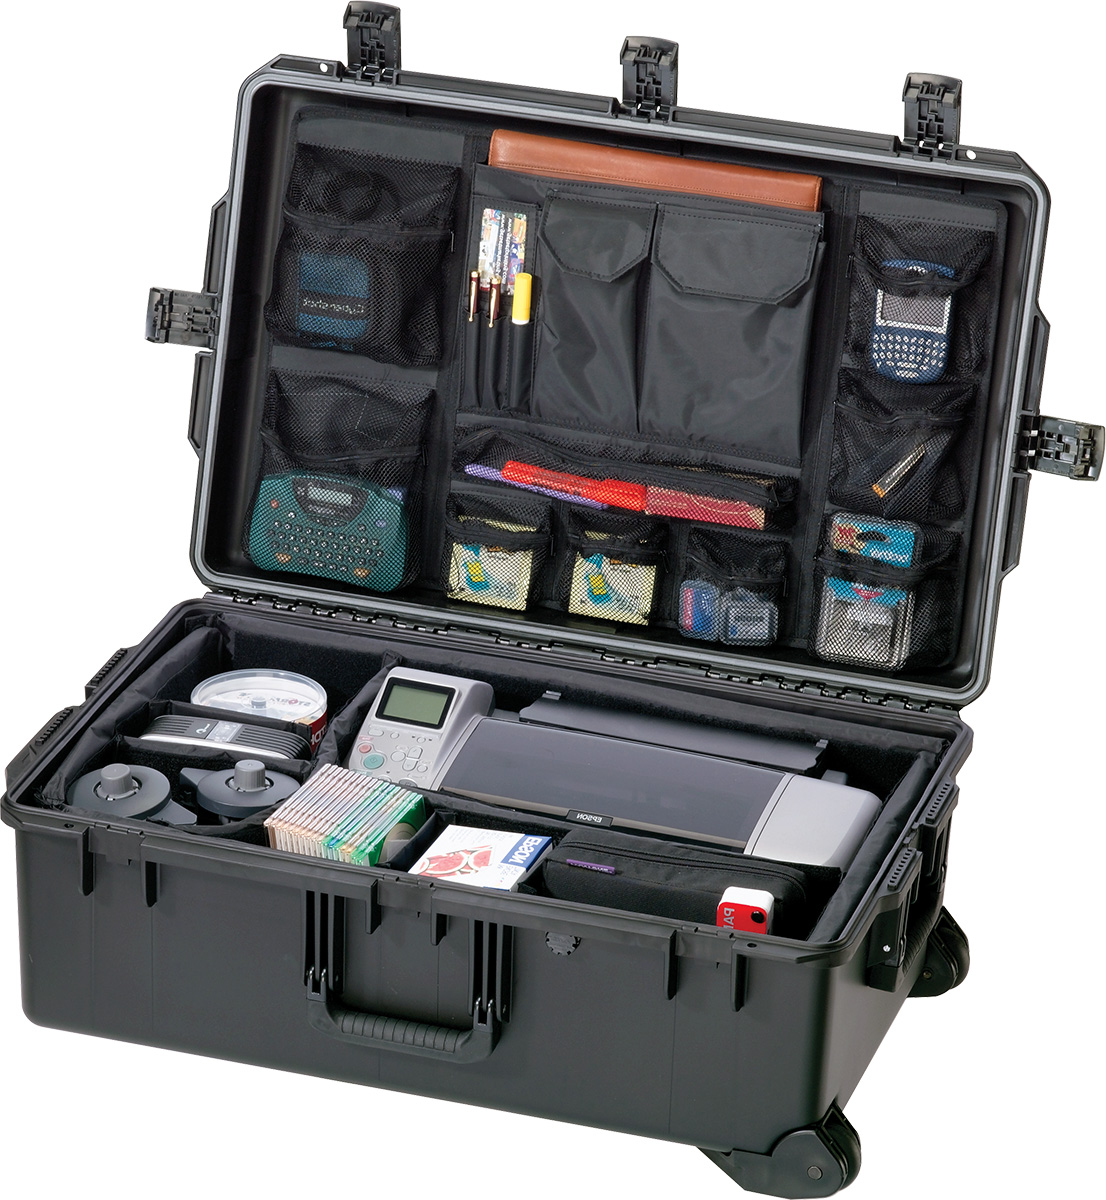 pelican im2950 organization rugged case